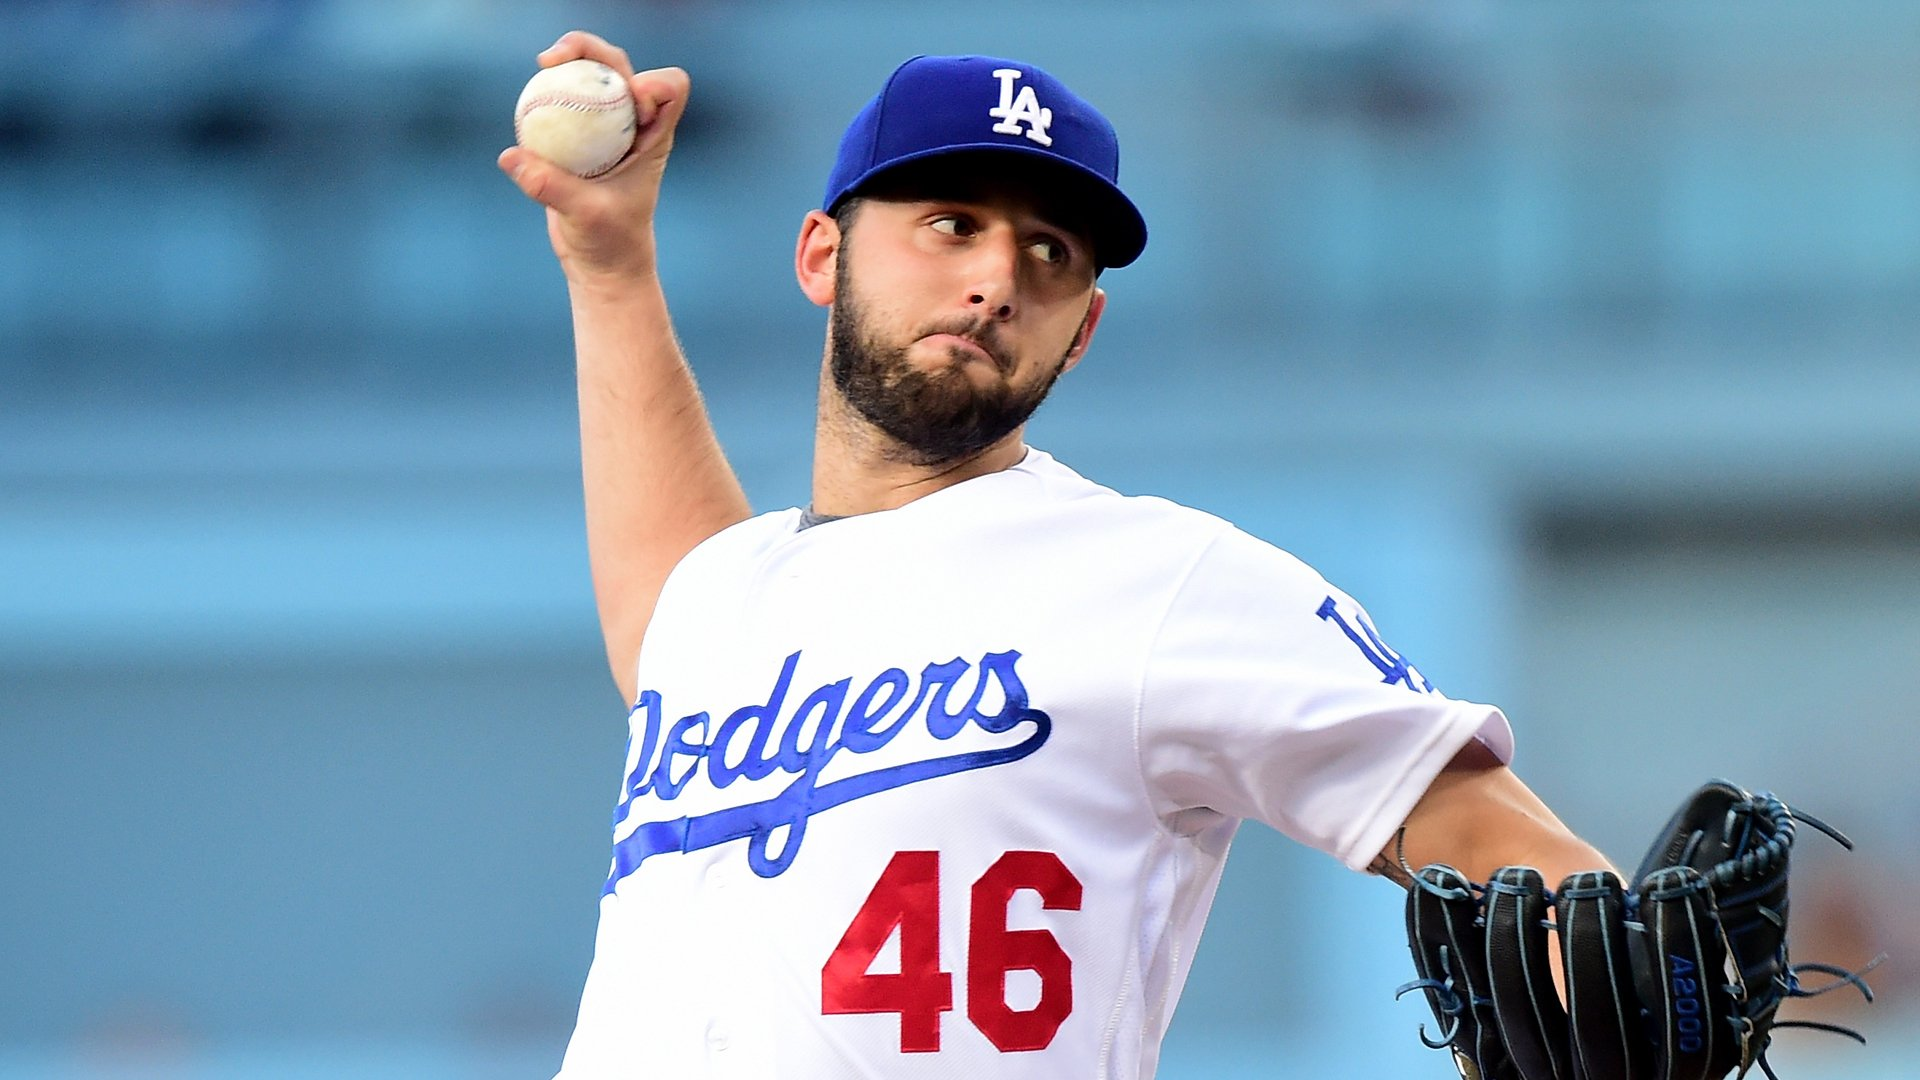 Mike Bolsinger of the Los Angeles Dodgers pitches to the Milwaukee Brewers during the first inning at Dodger Stadium on June 18, 2016. (Credit: Harry How/Getty Images)